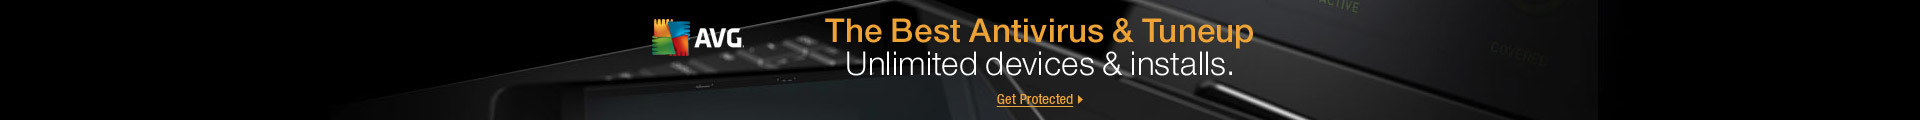 The best antivirus & Tuneup Unlimited devices & installs